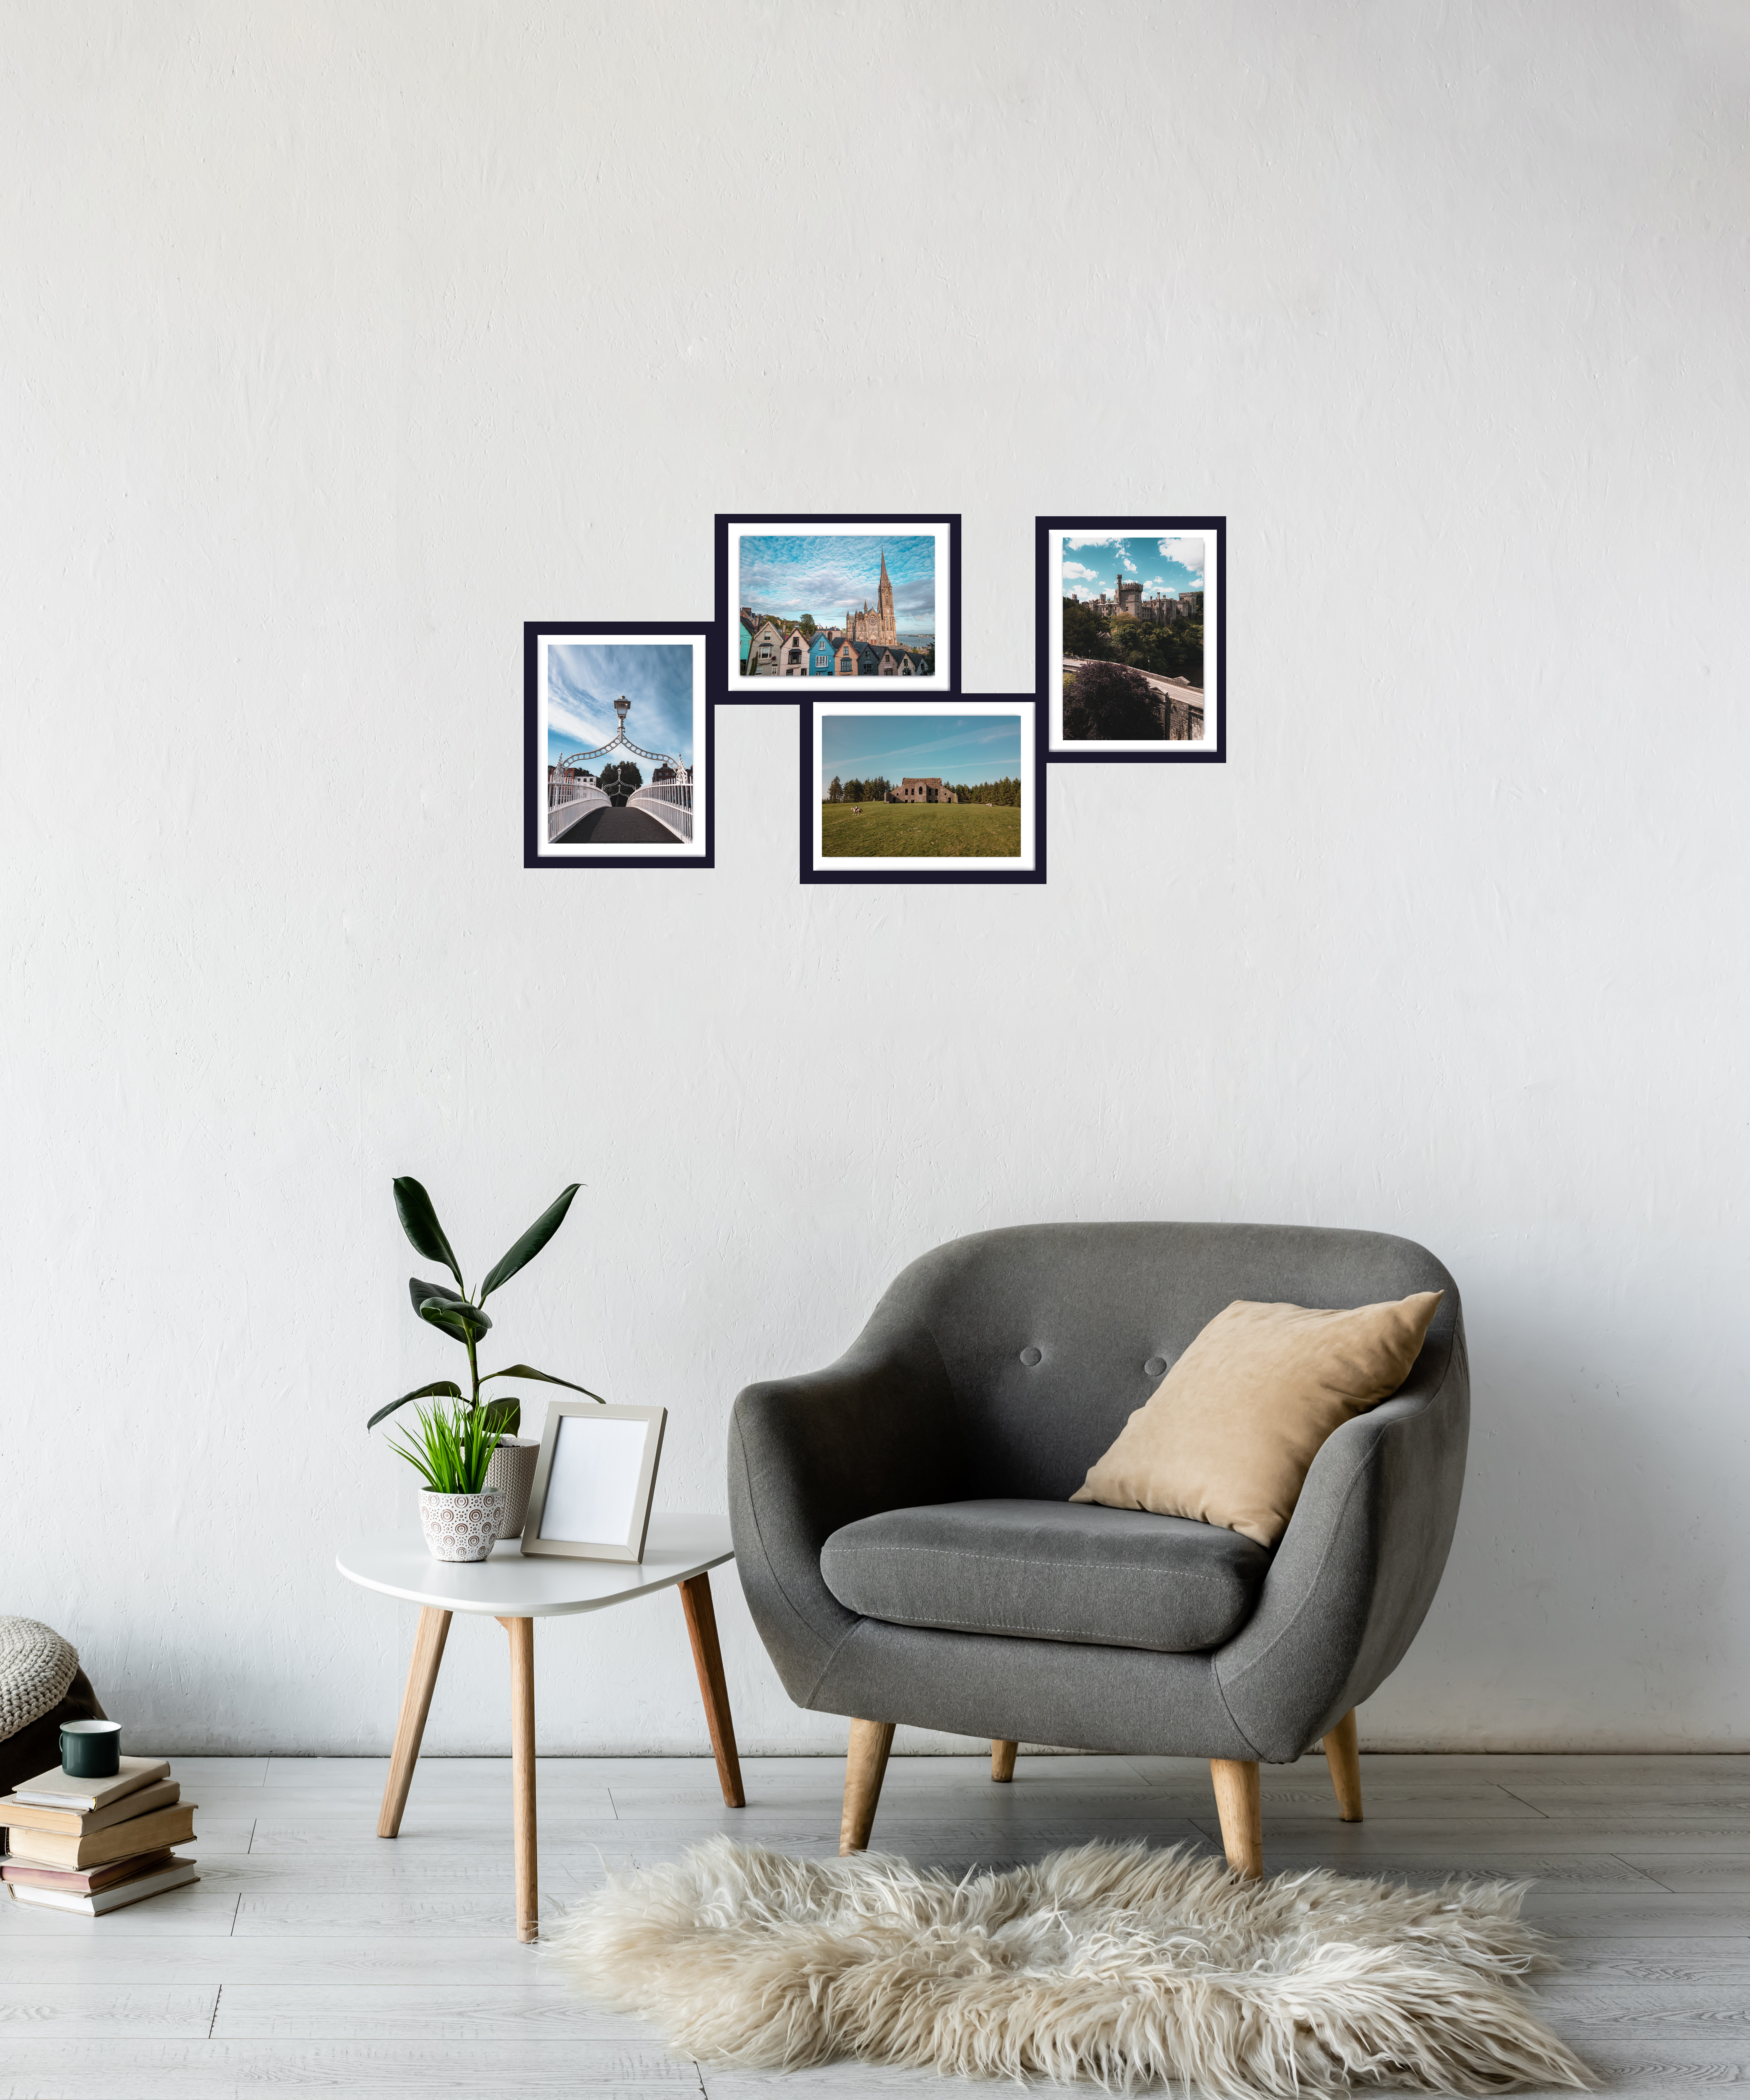 6x4 4 Group images display